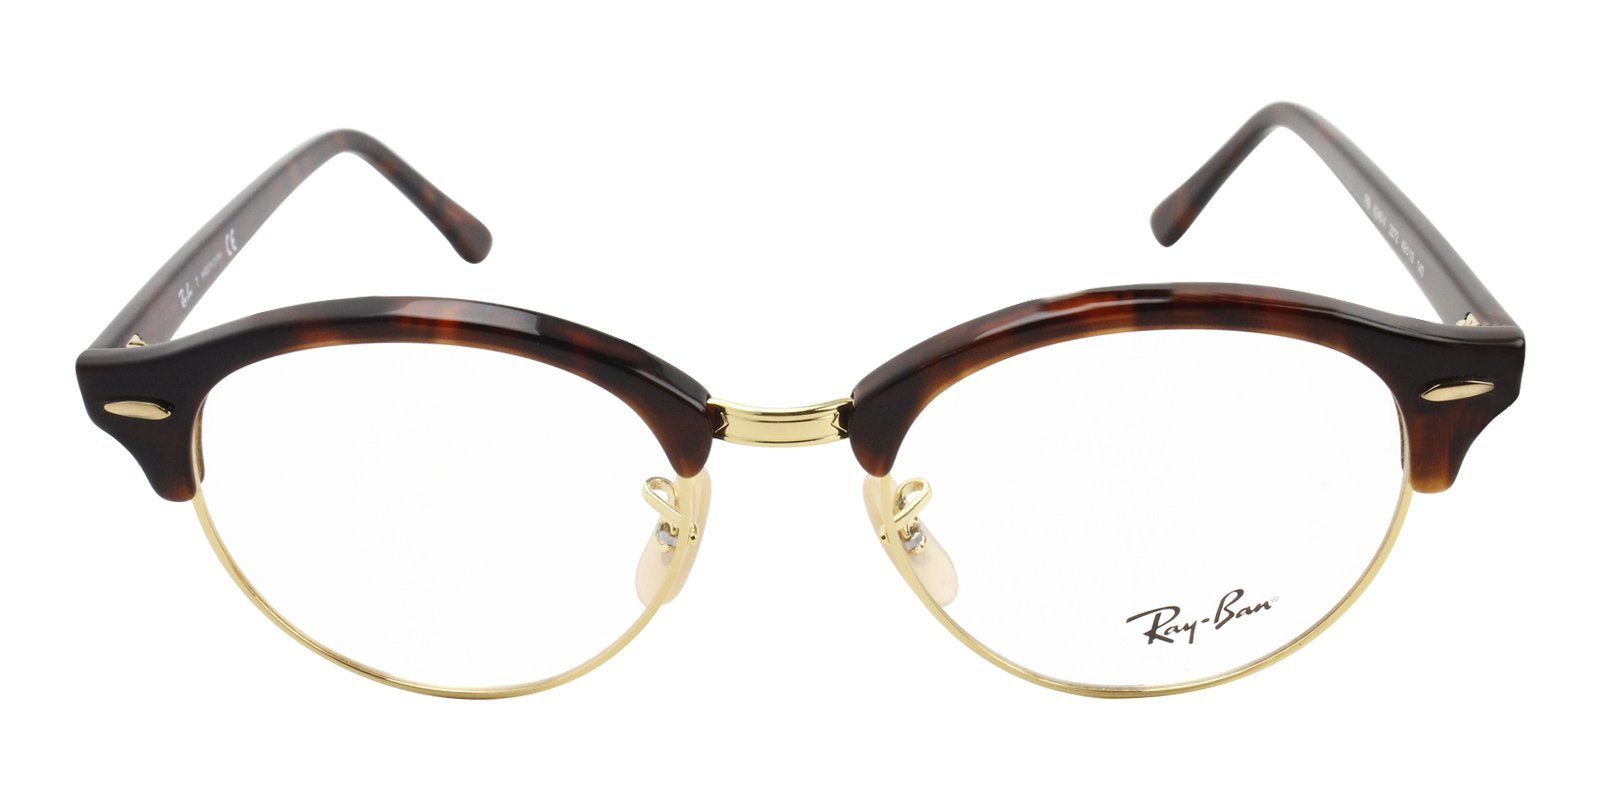 Ray Ban Rx - RX4246V Tortoise Oval Women Eyeglasses - 49mm-Eyeglasses-Designer Eyes